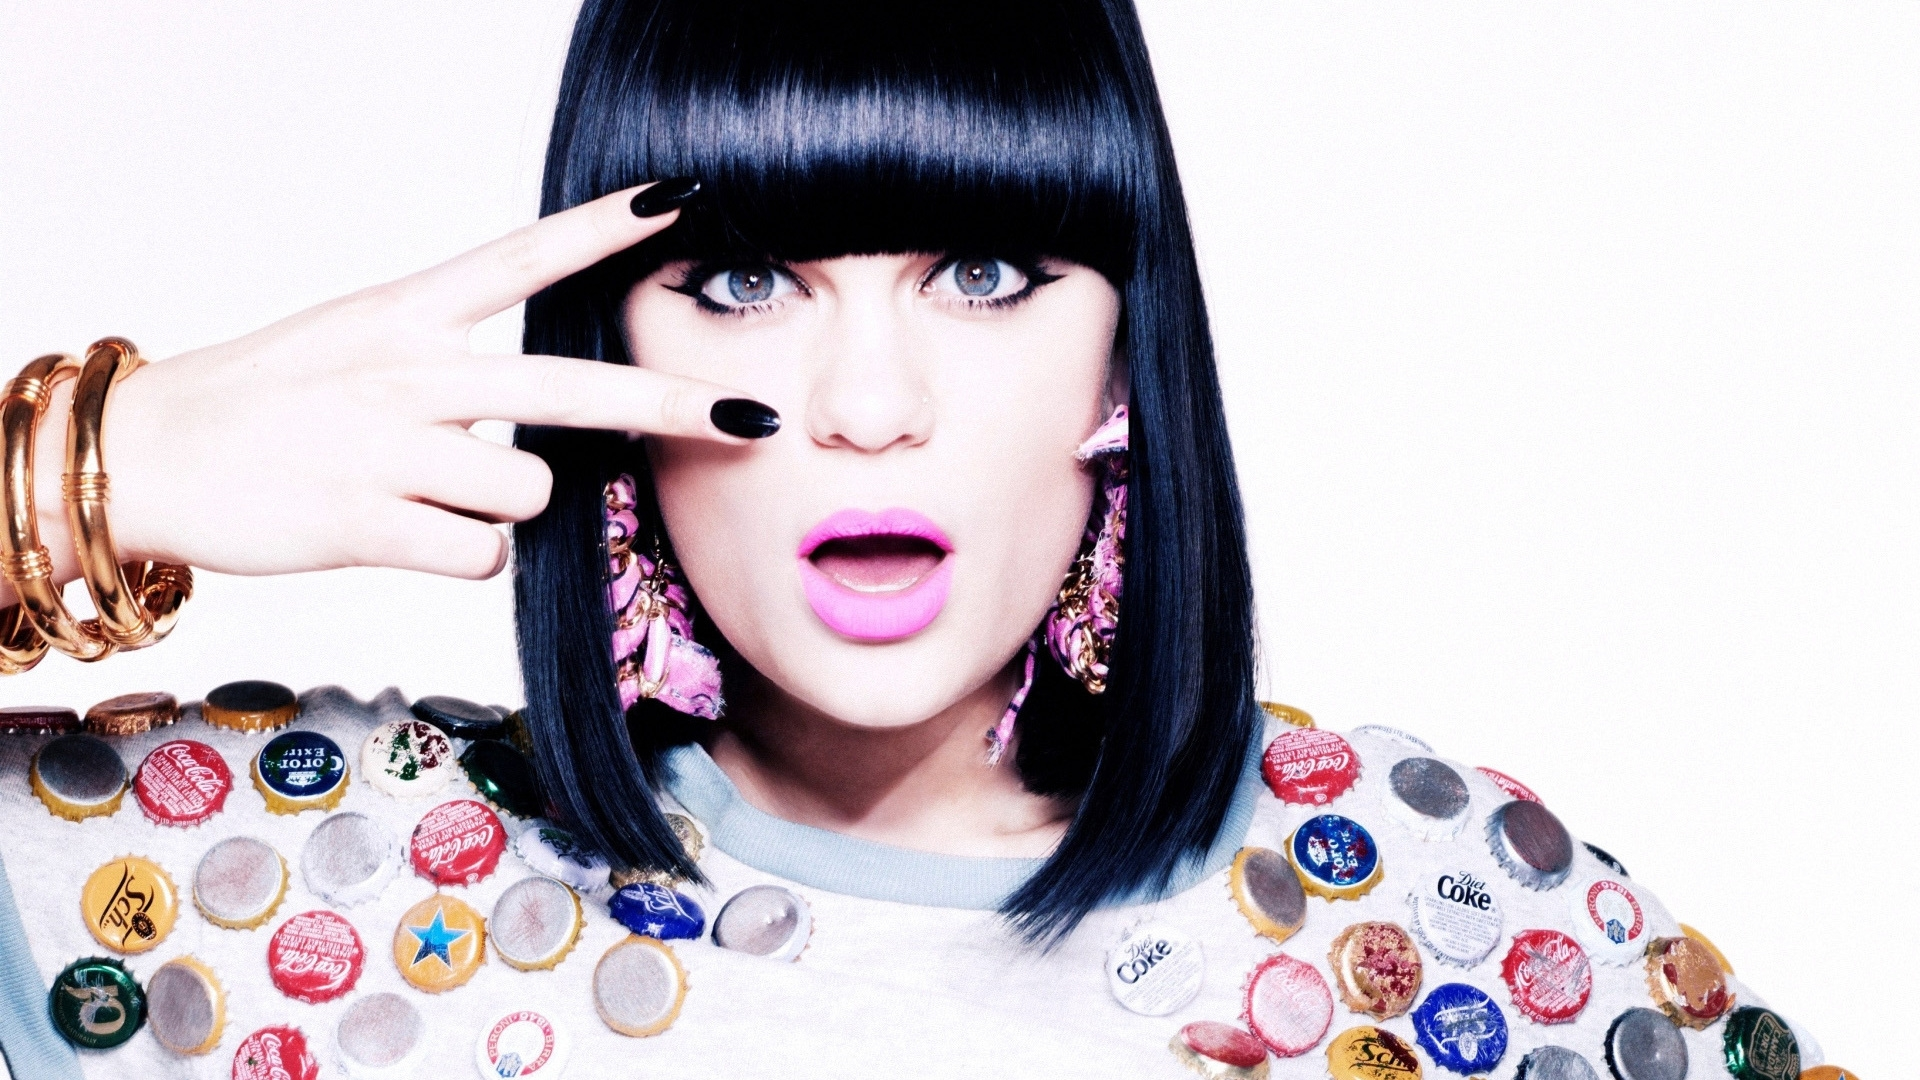 Jessie J Wallpaper.